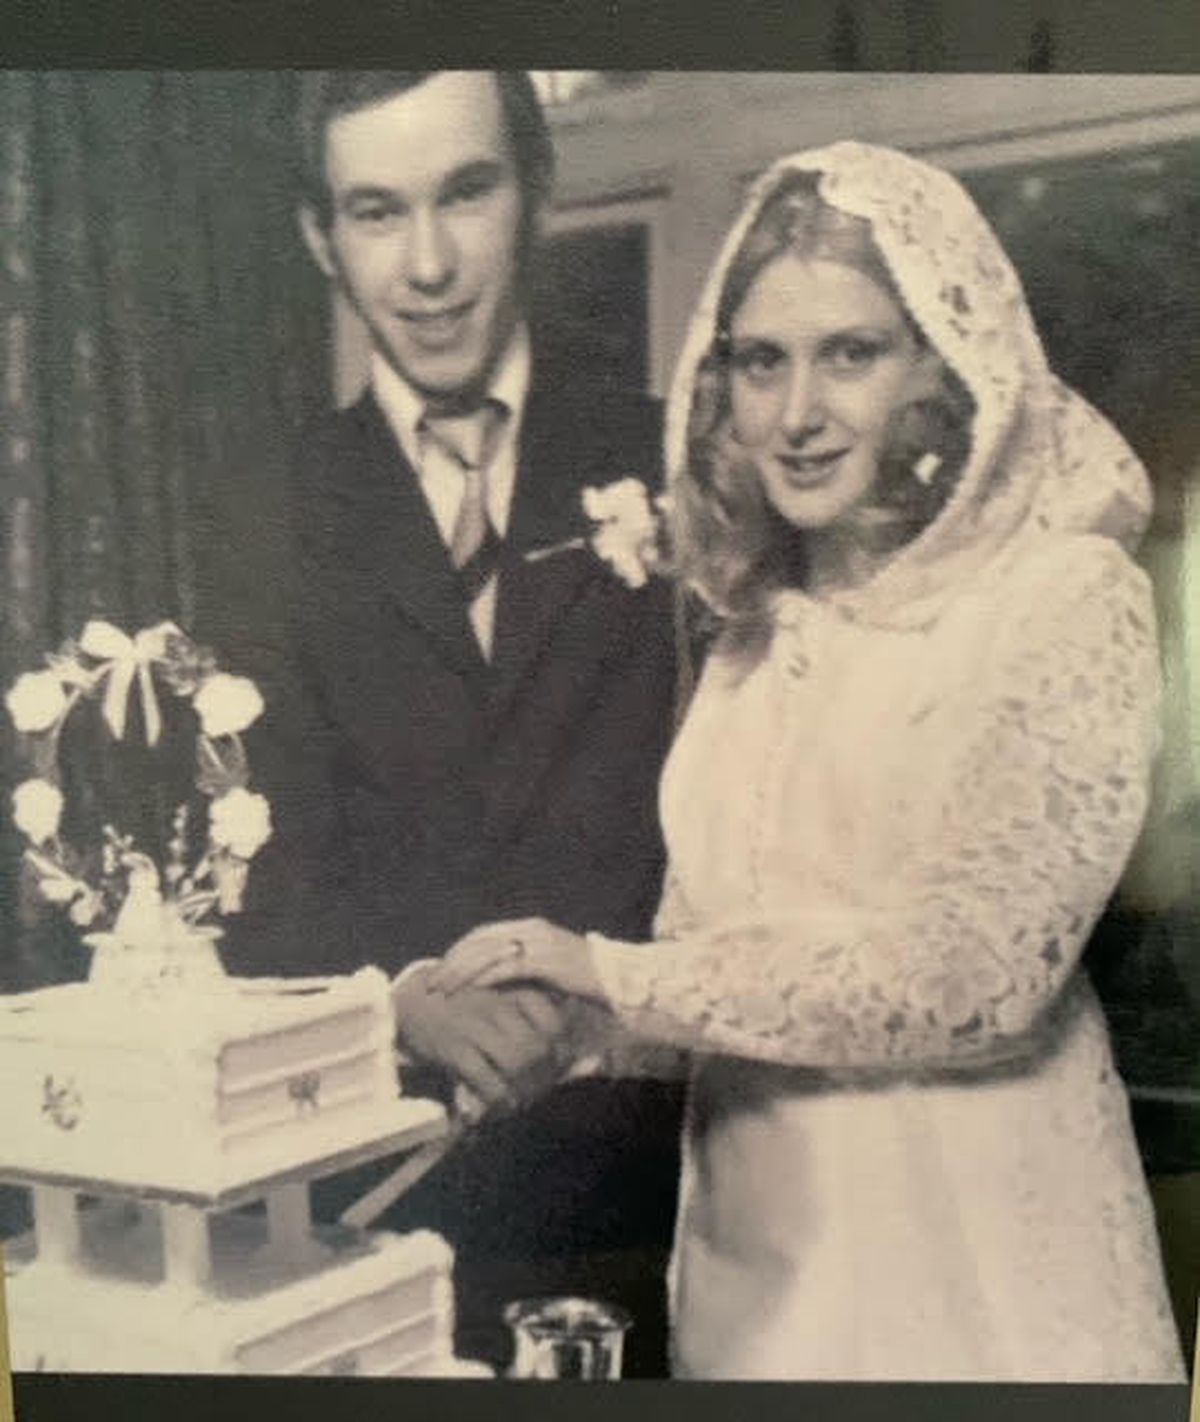 Kenny and Anne Barber on their wedding day in 1973